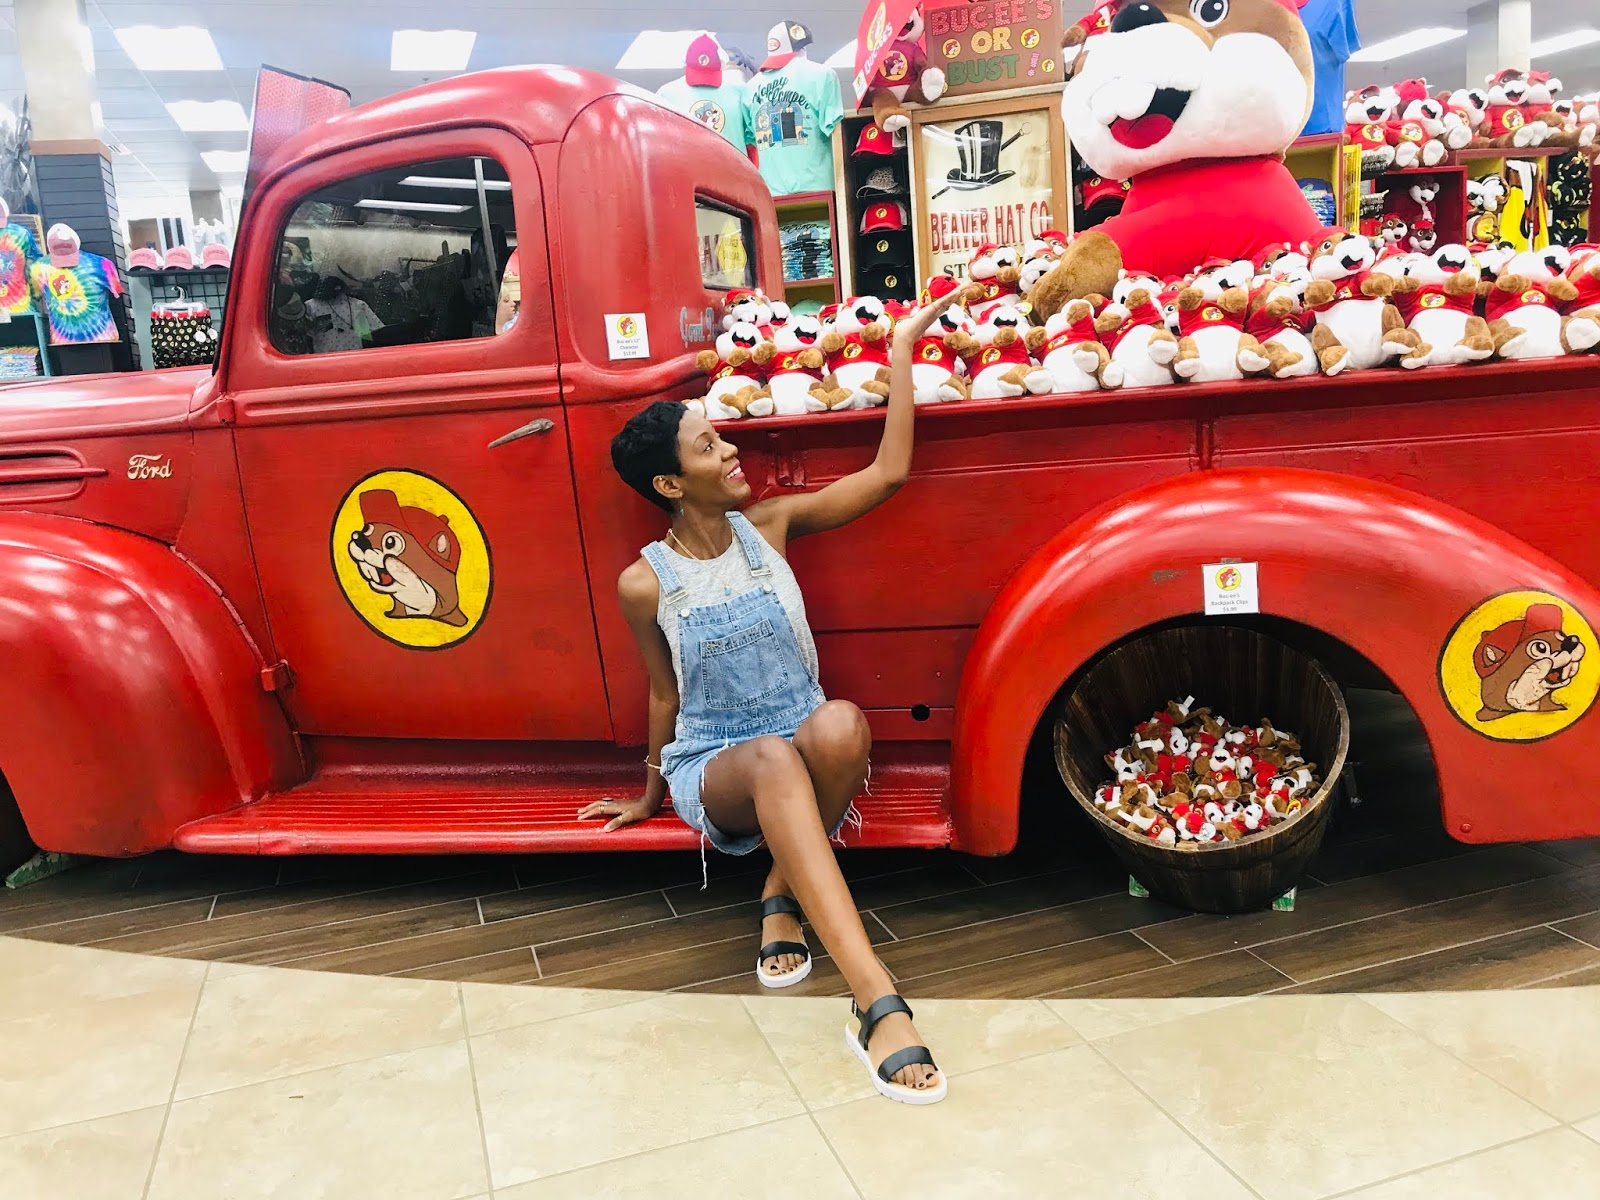 My FIRST Trip To Buc-ee's Beaver Store: Fun, Food, Shopping And A Good Ole' Time!